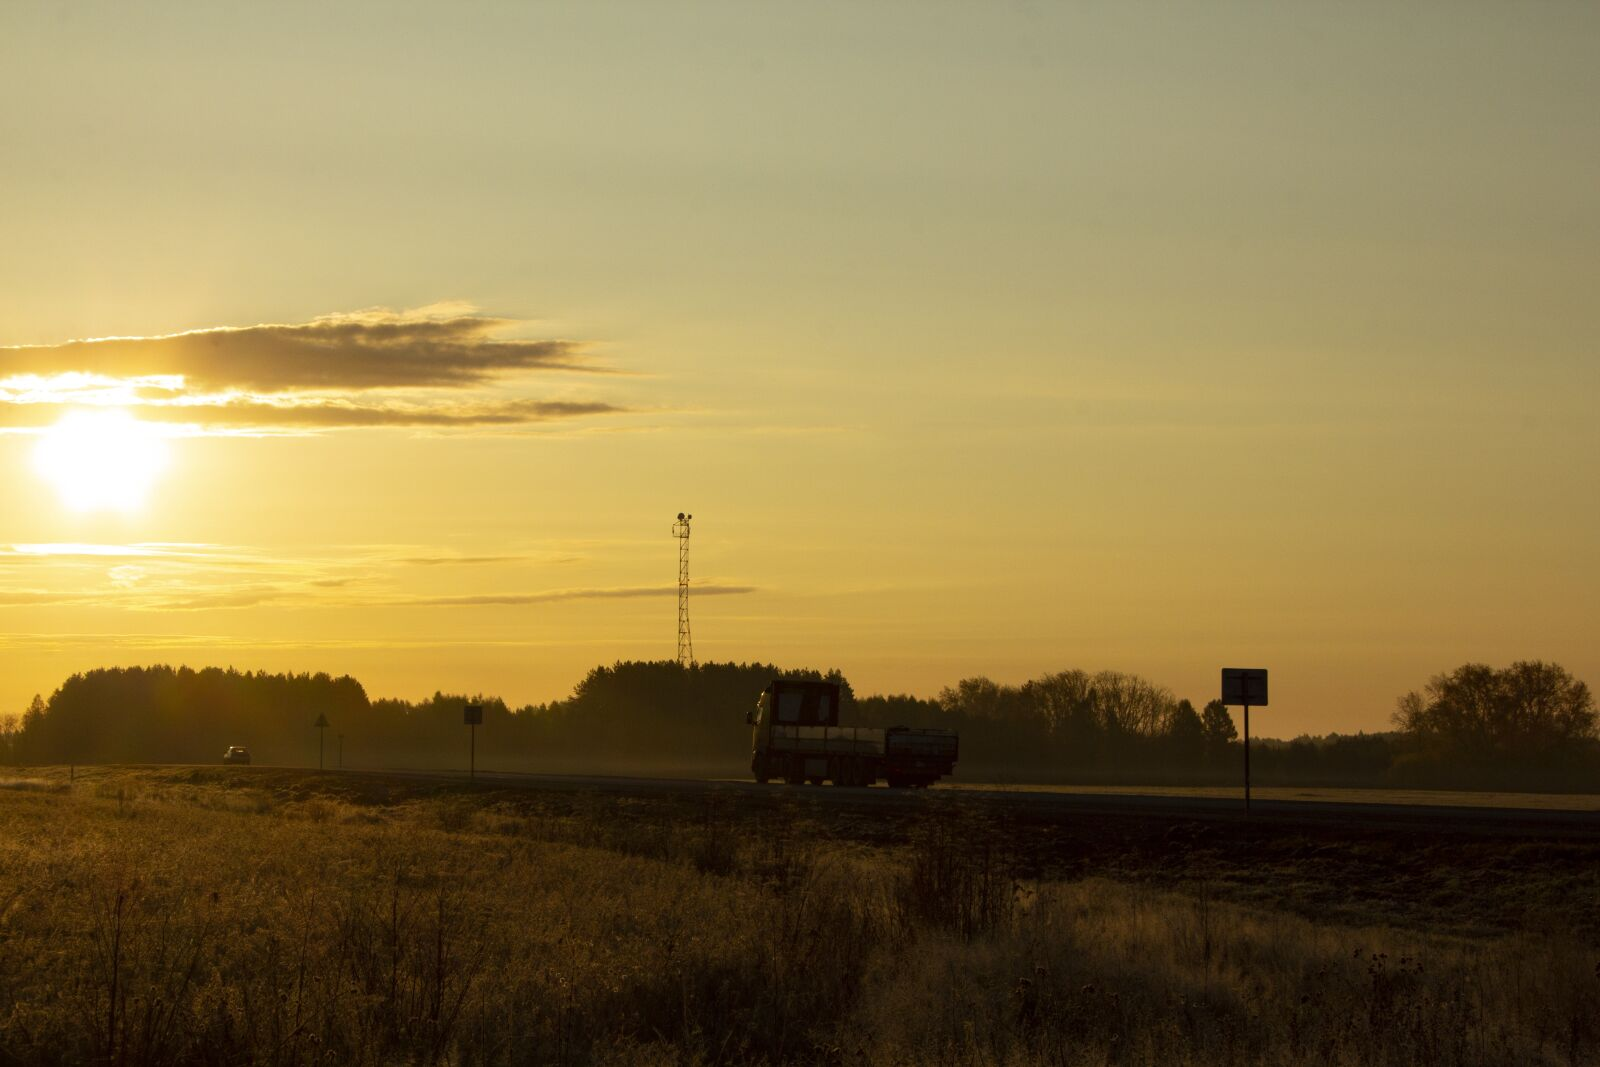 """Canon EOS 60D sample photo. """"Road, track, dawn"""" photography"""